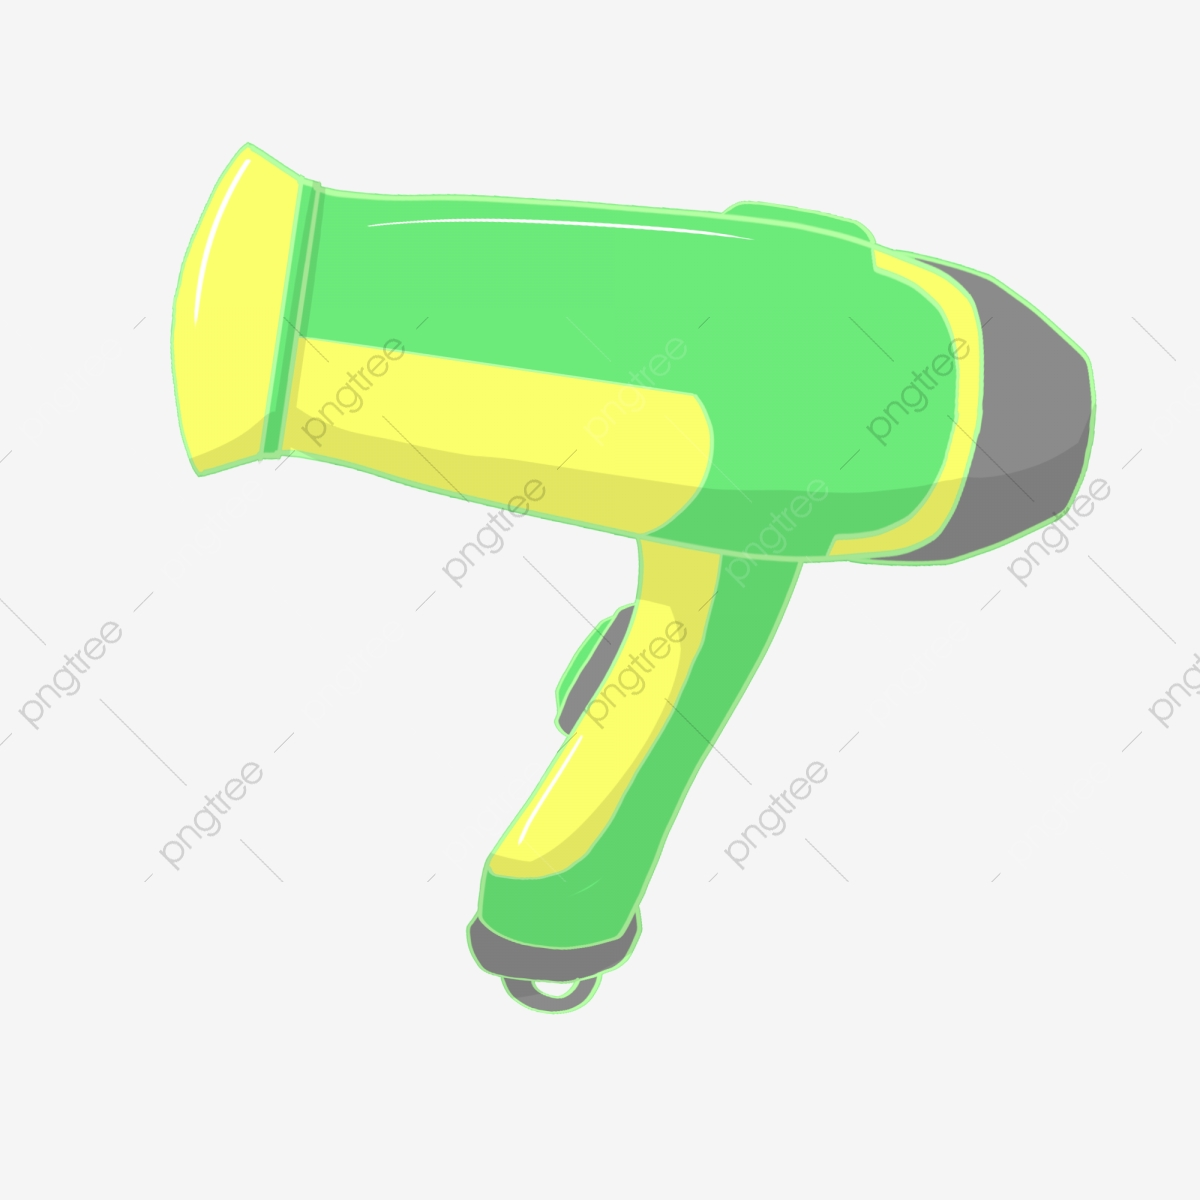 hight resolution of commercial use resource upgrade to premium plan and get license authorization upgradenow hand drawn hair dryer